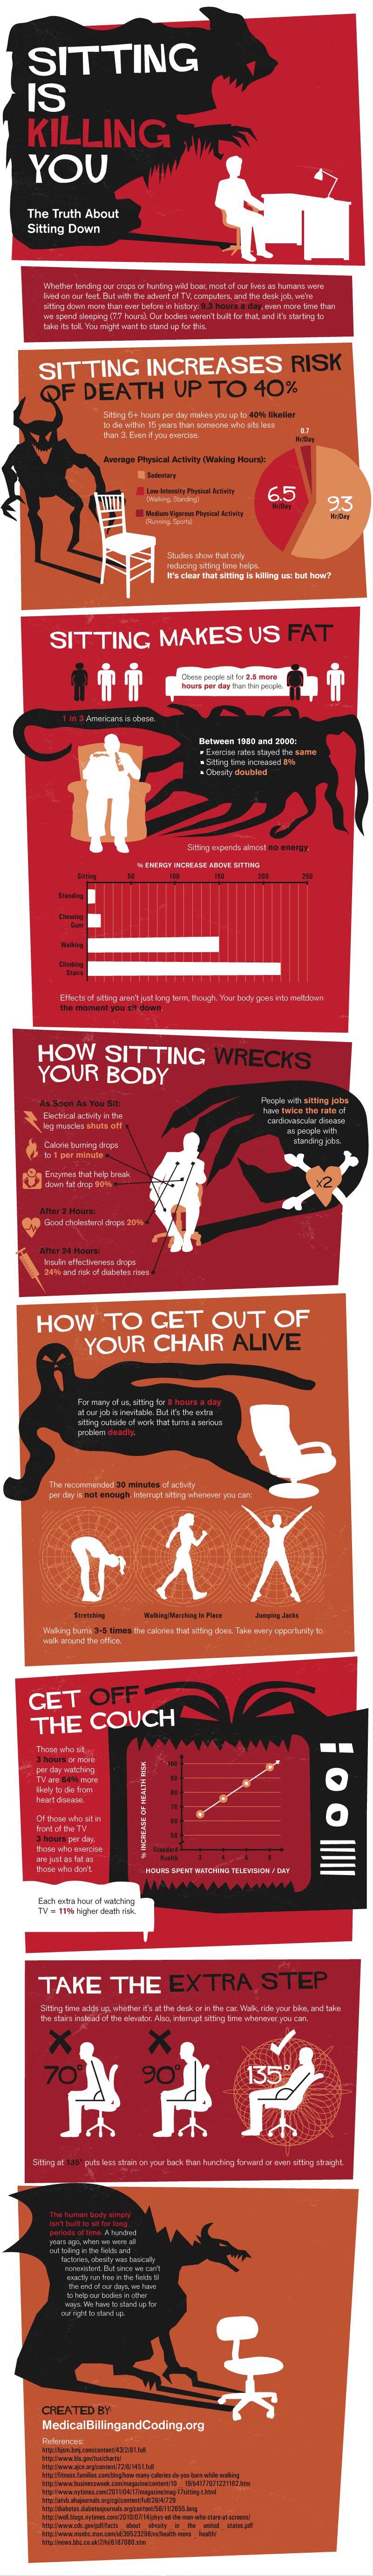 Sitting Down Is Killing You Daily Infographic